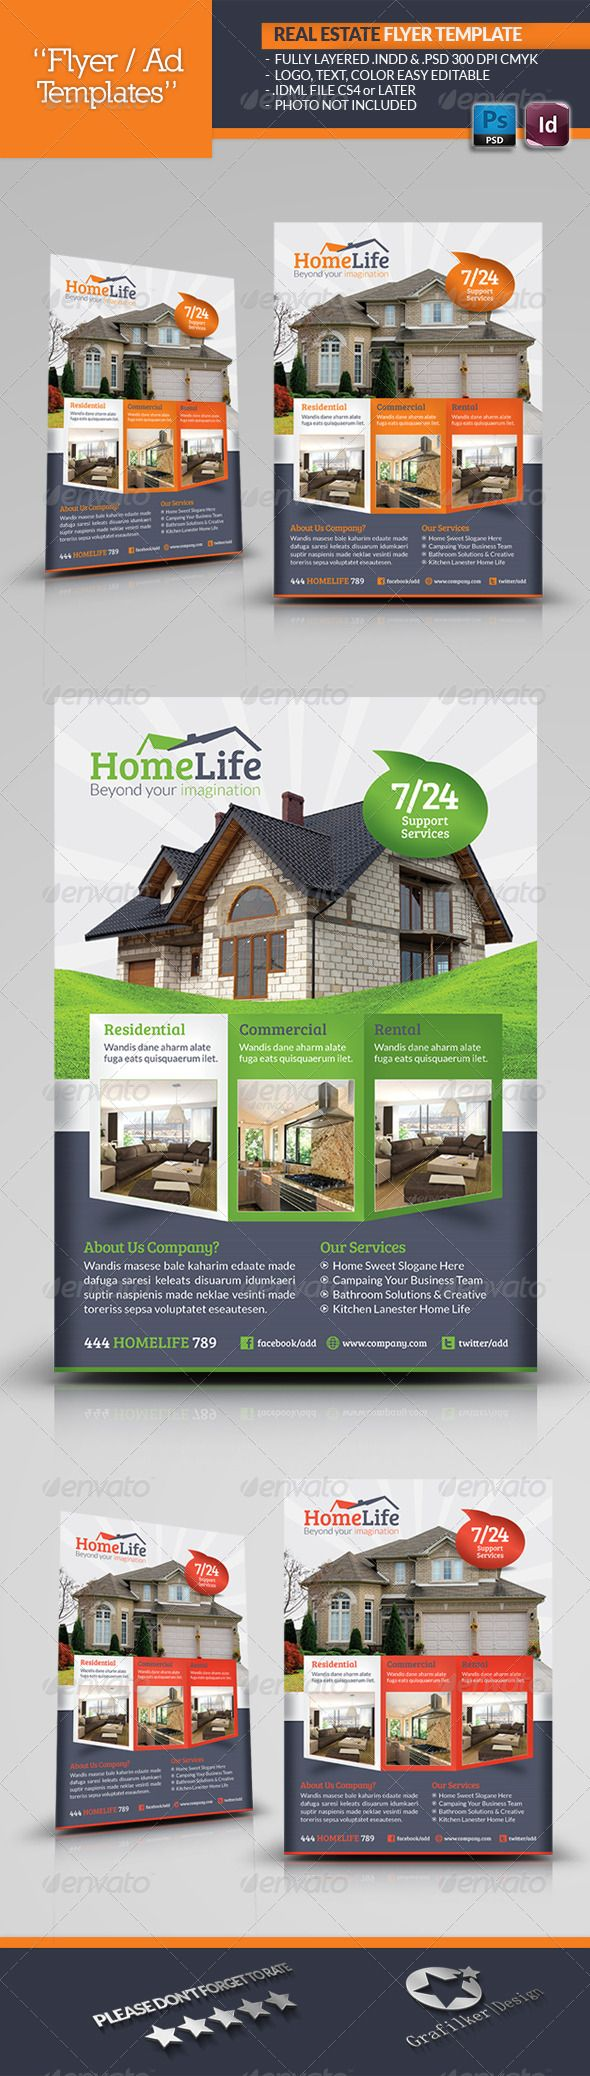 best images about real estate brochures flyers 17 best images about real estate brochures flyers marketing postcards and real estate business